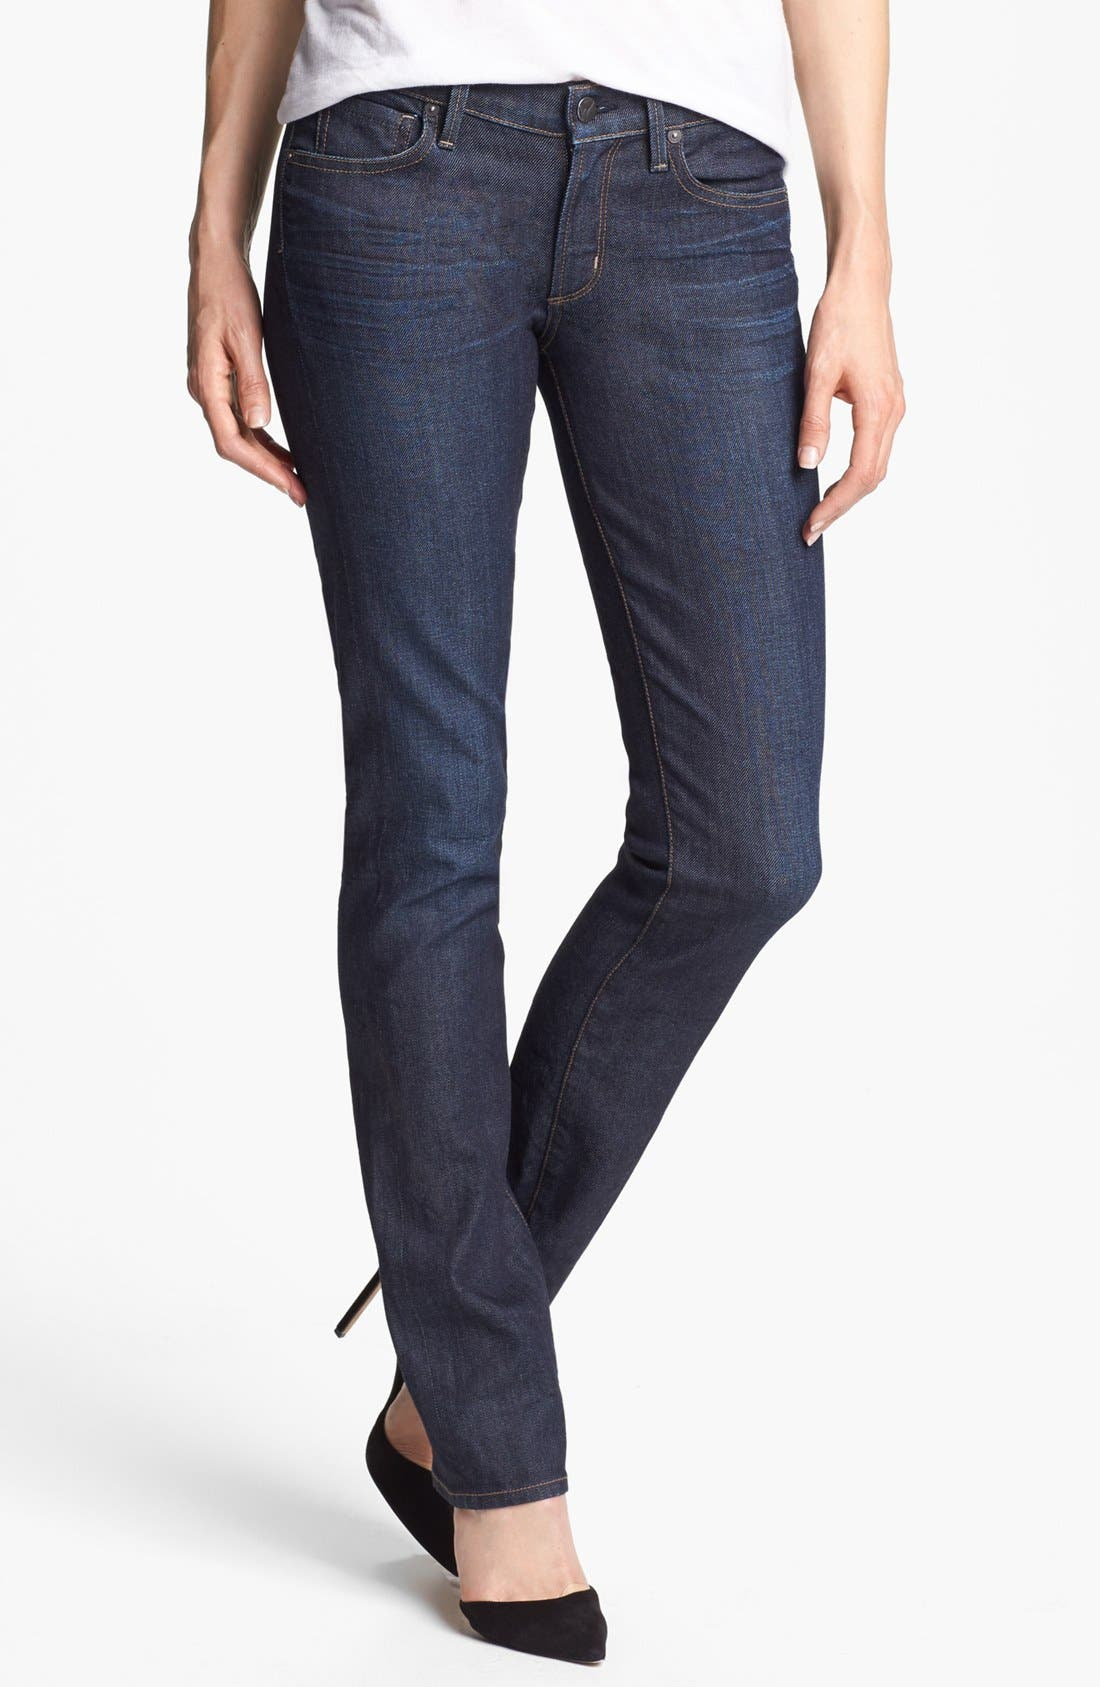 Alternate Image 1 Selected - Citizens of Humanity 'Ava' Straight Leg Jeans (Hush)